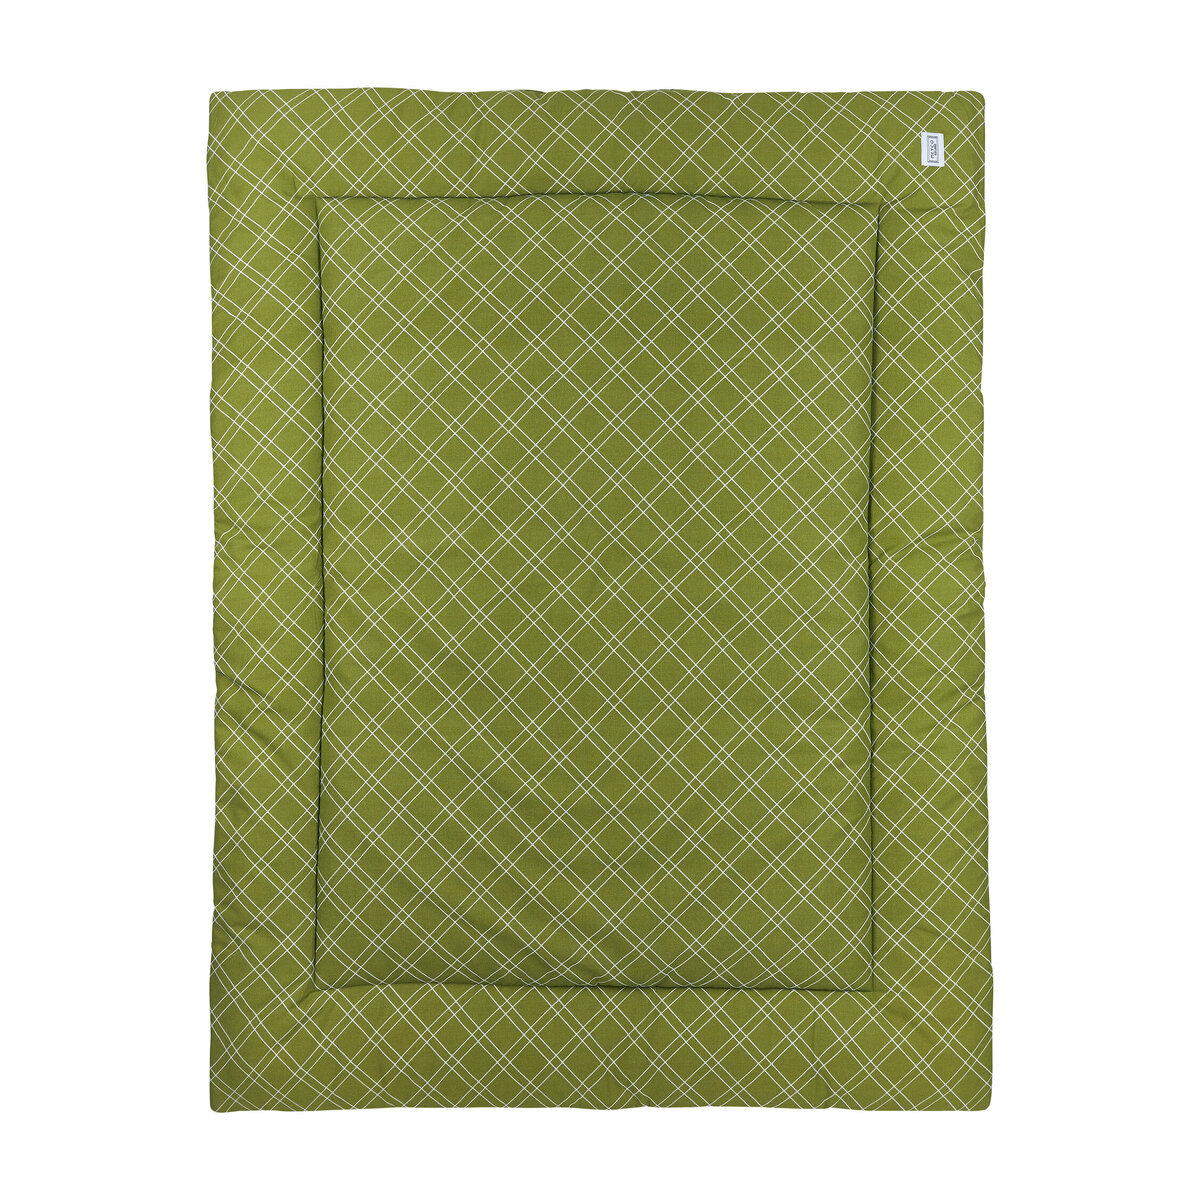 Meyco Boxkleed Double Diamond 80x100 cm. 80x100 - Avocado